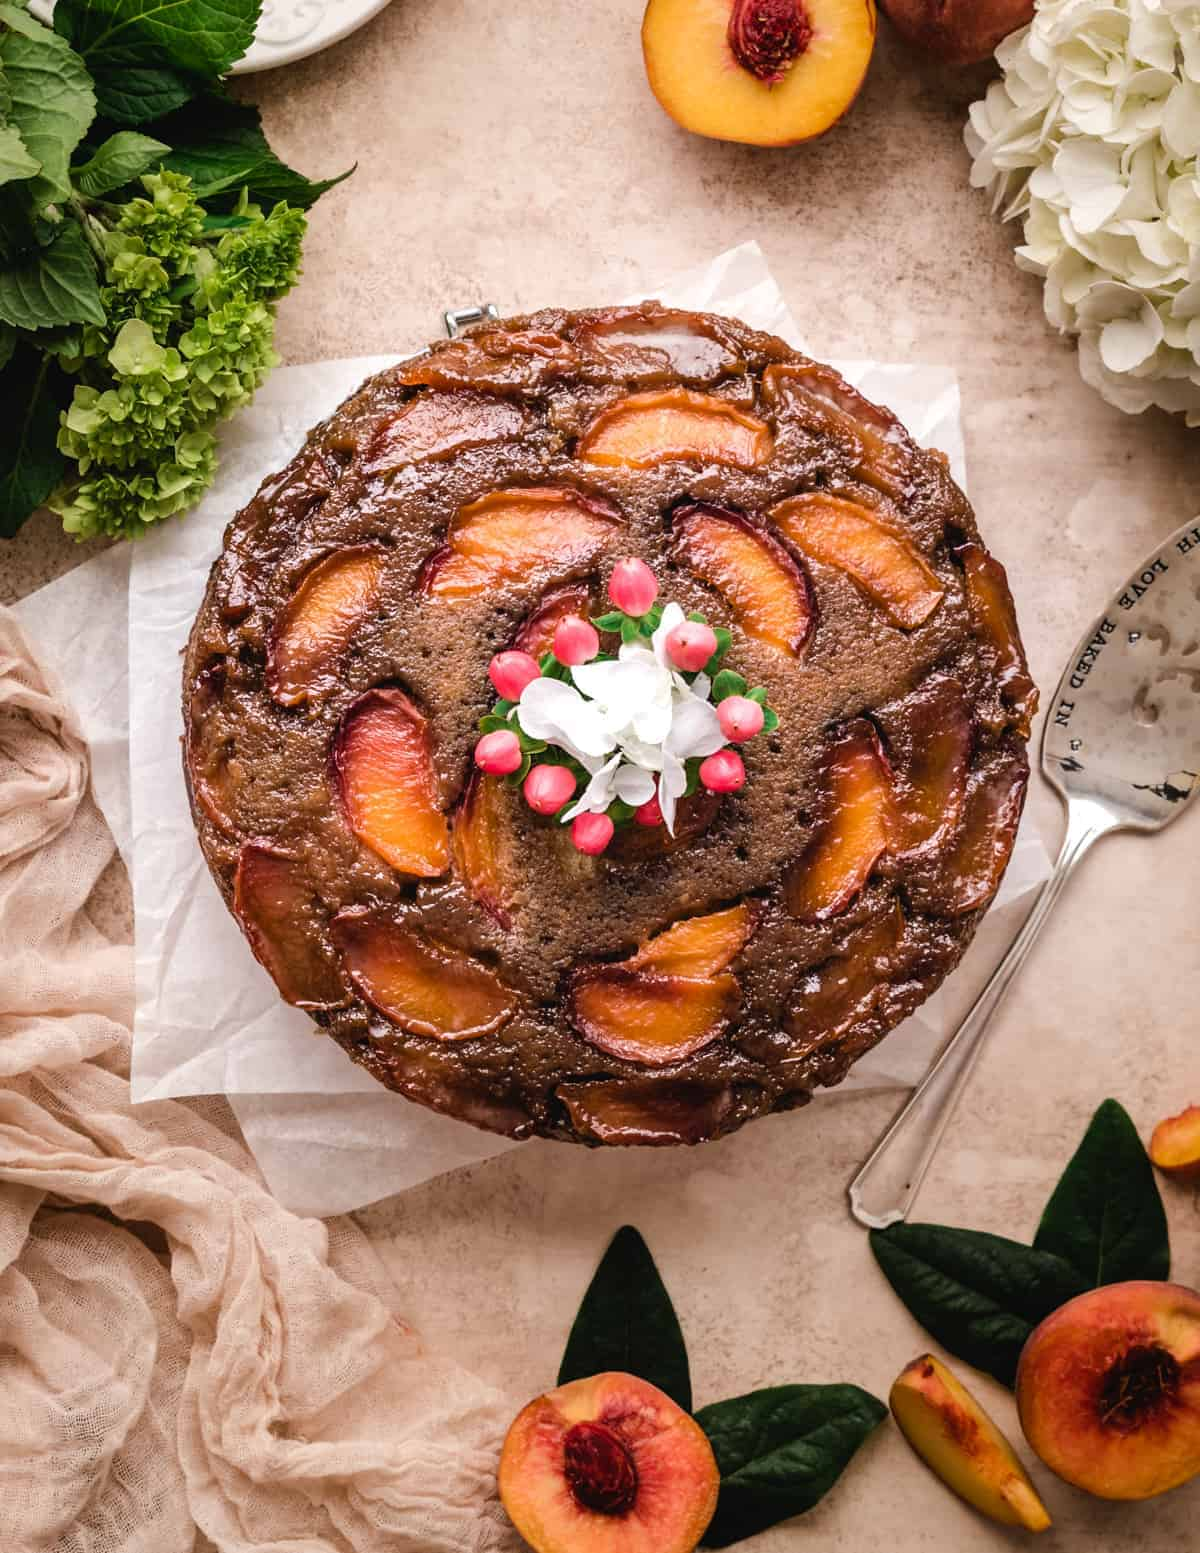 This caramel peach upside down cake is the perfect summer dessert.